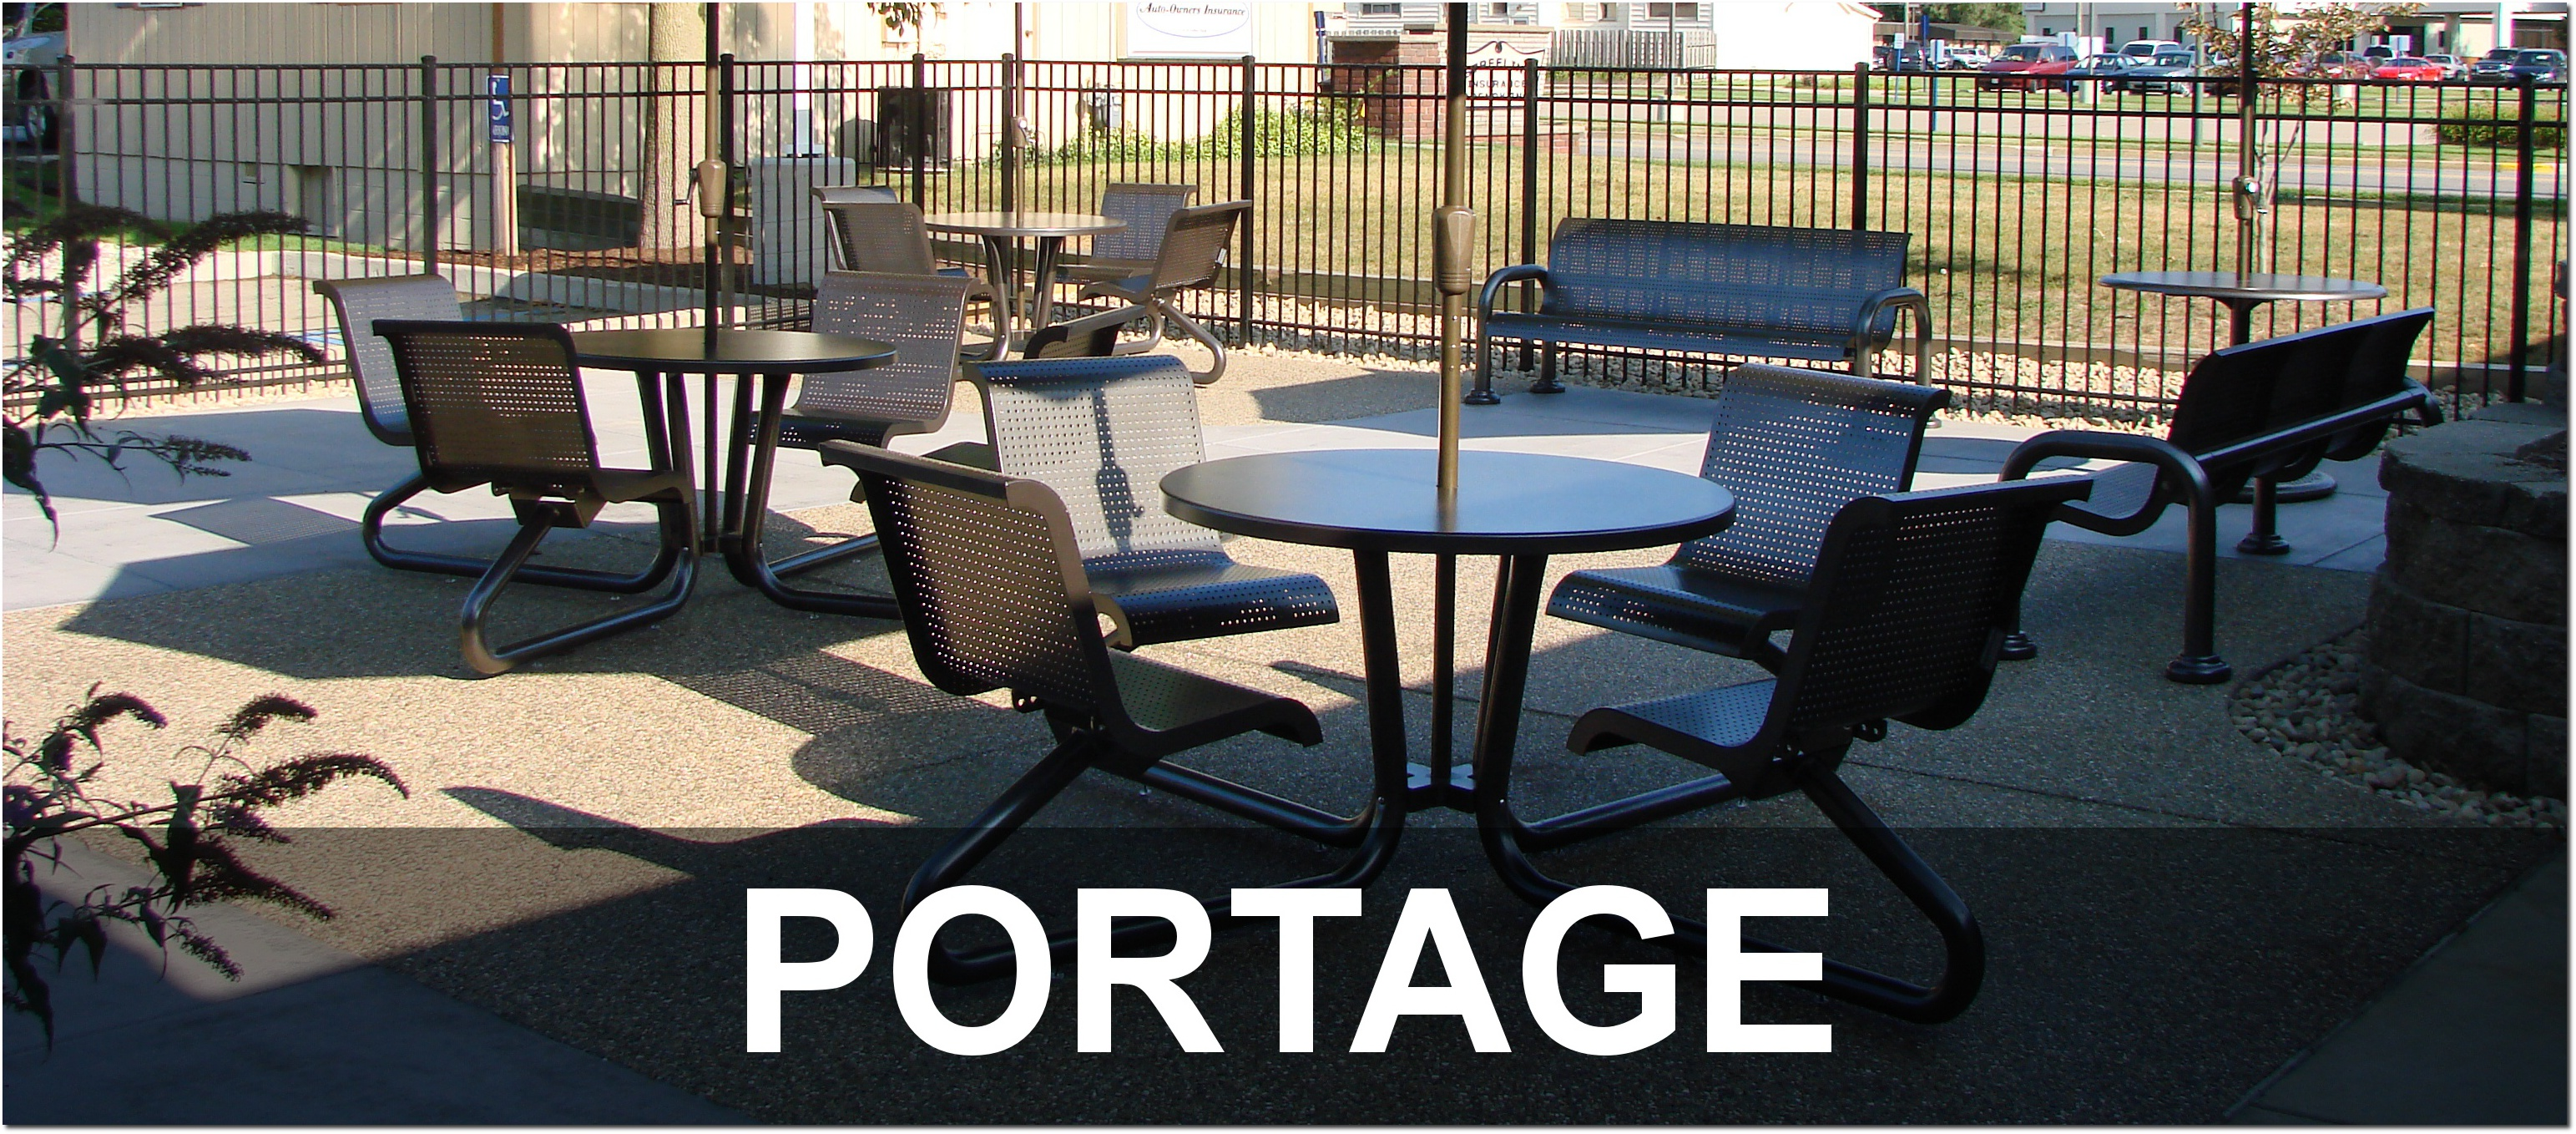 Portage Collection Contemporary Outdoor Commercial Site Furnishings